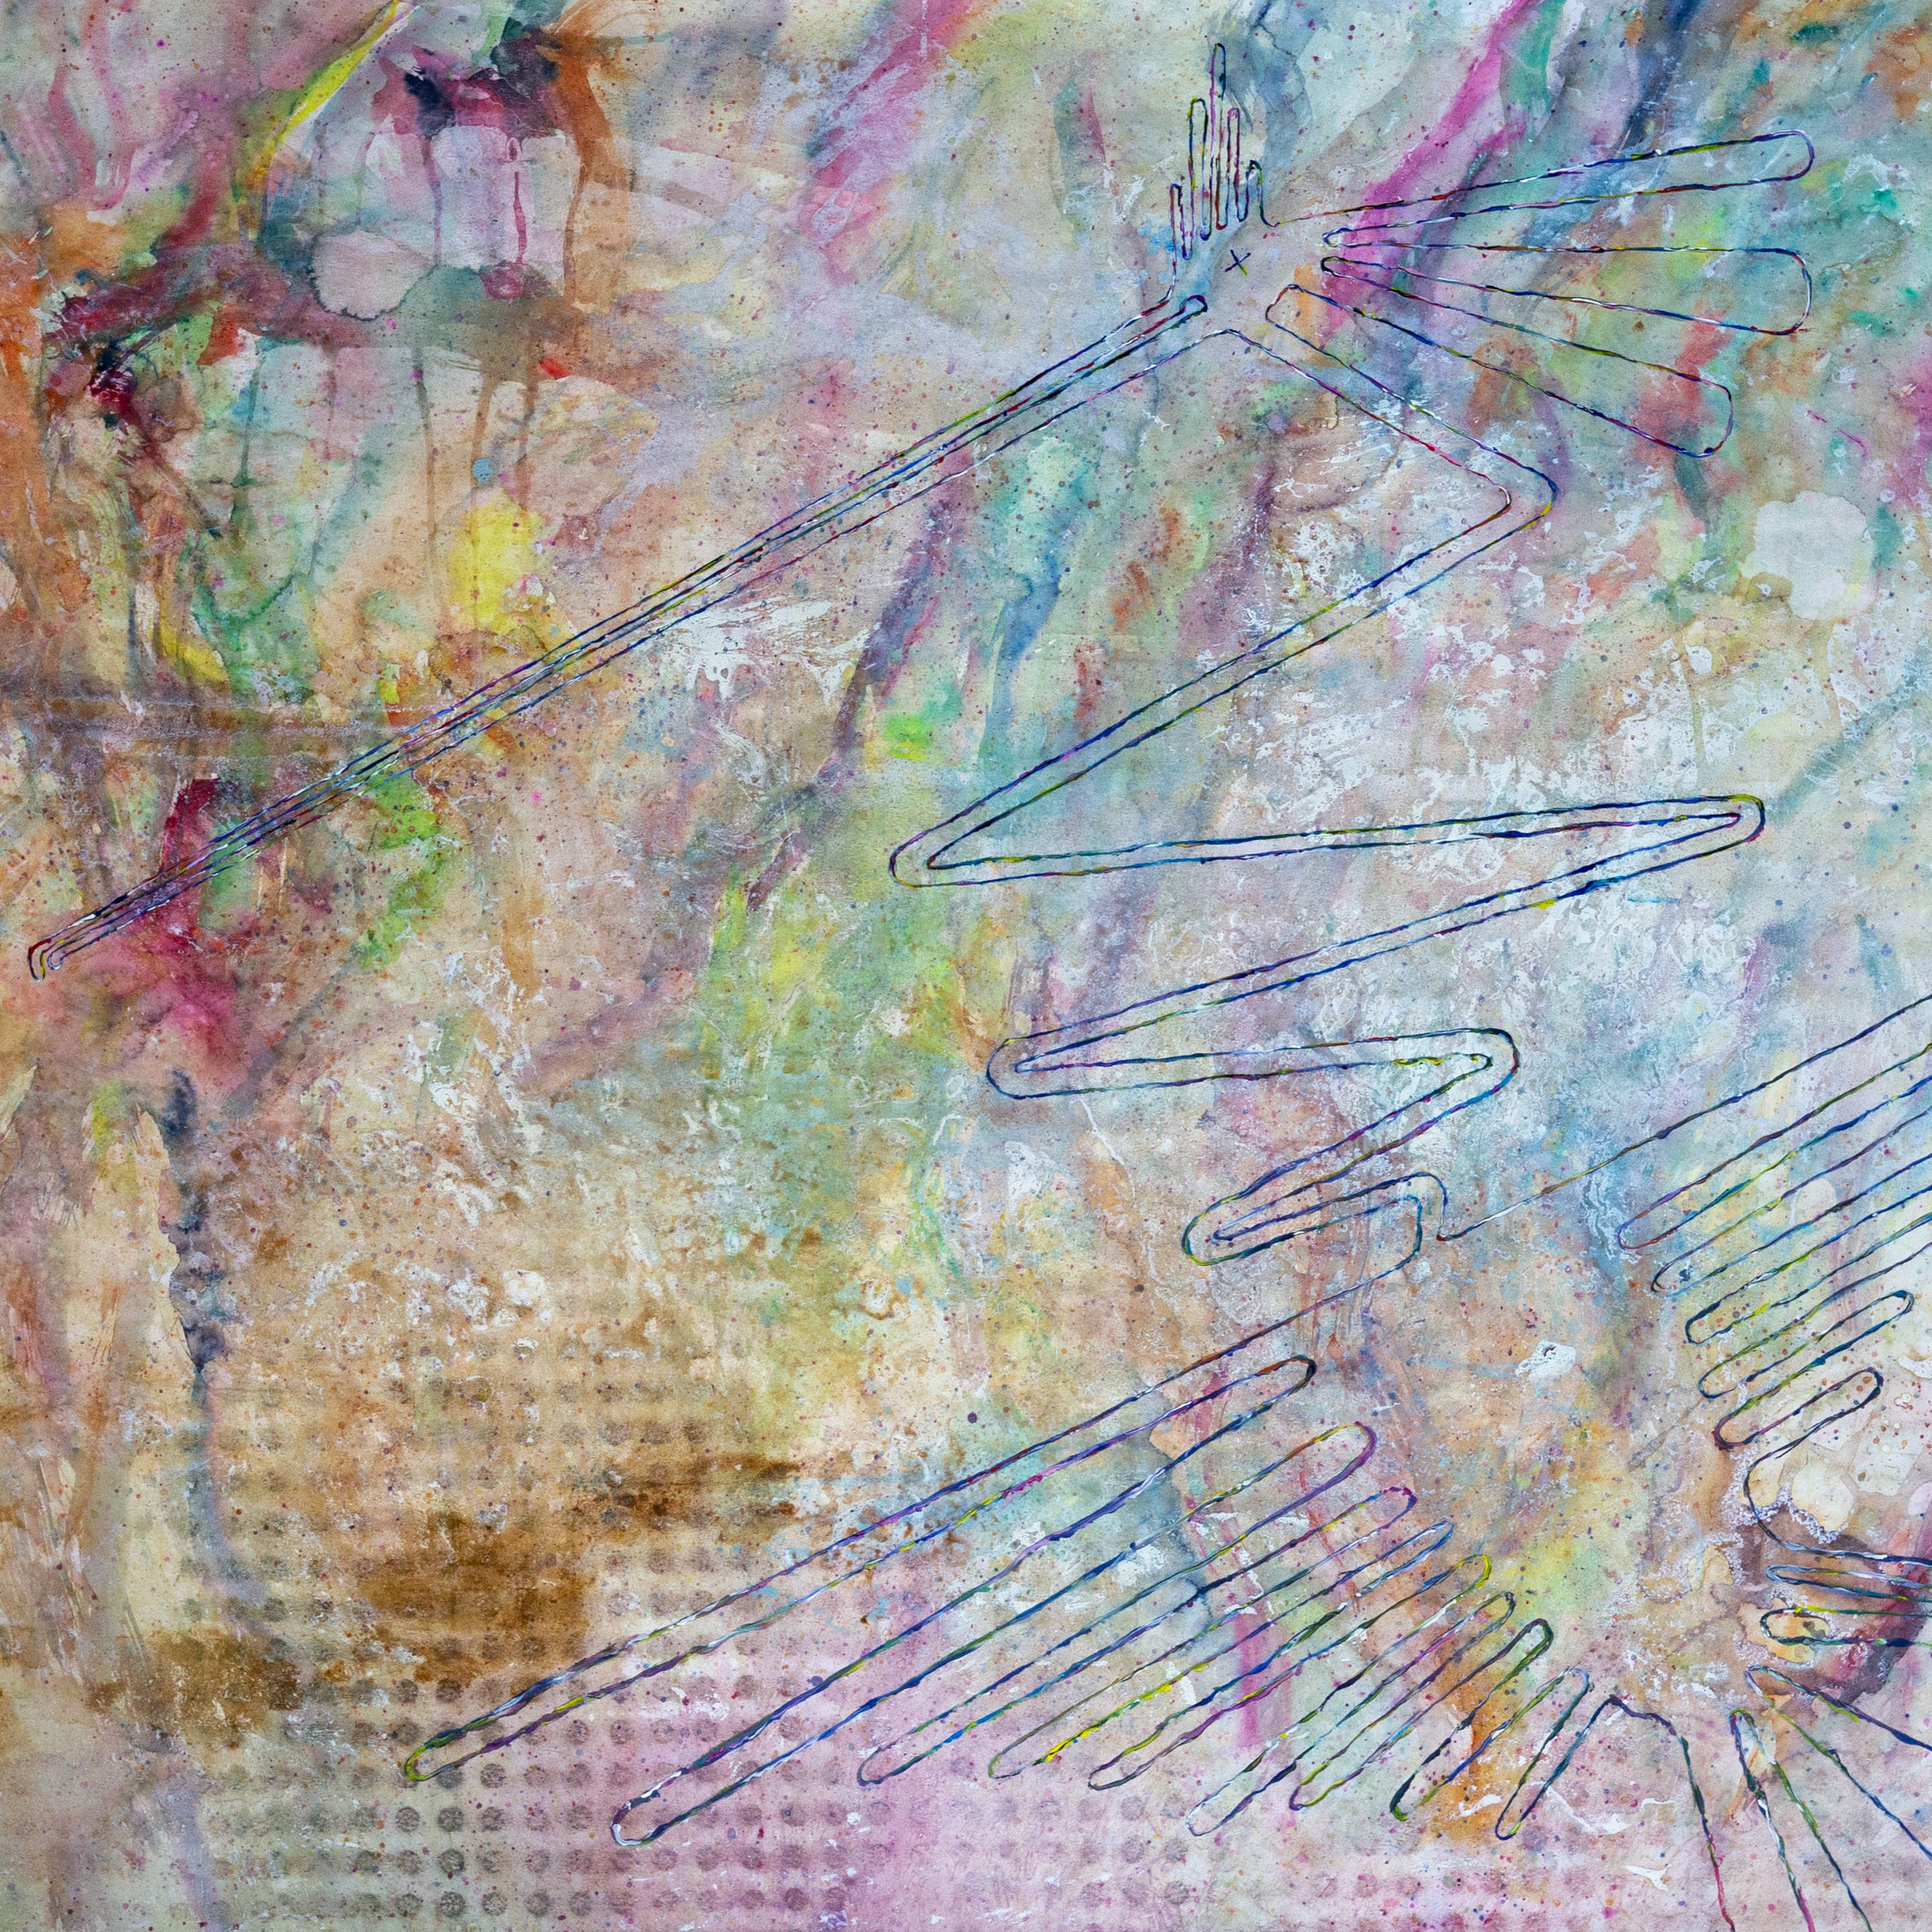 A Bird Got Killed Today | Painting on Paper | Lennart Schaffert